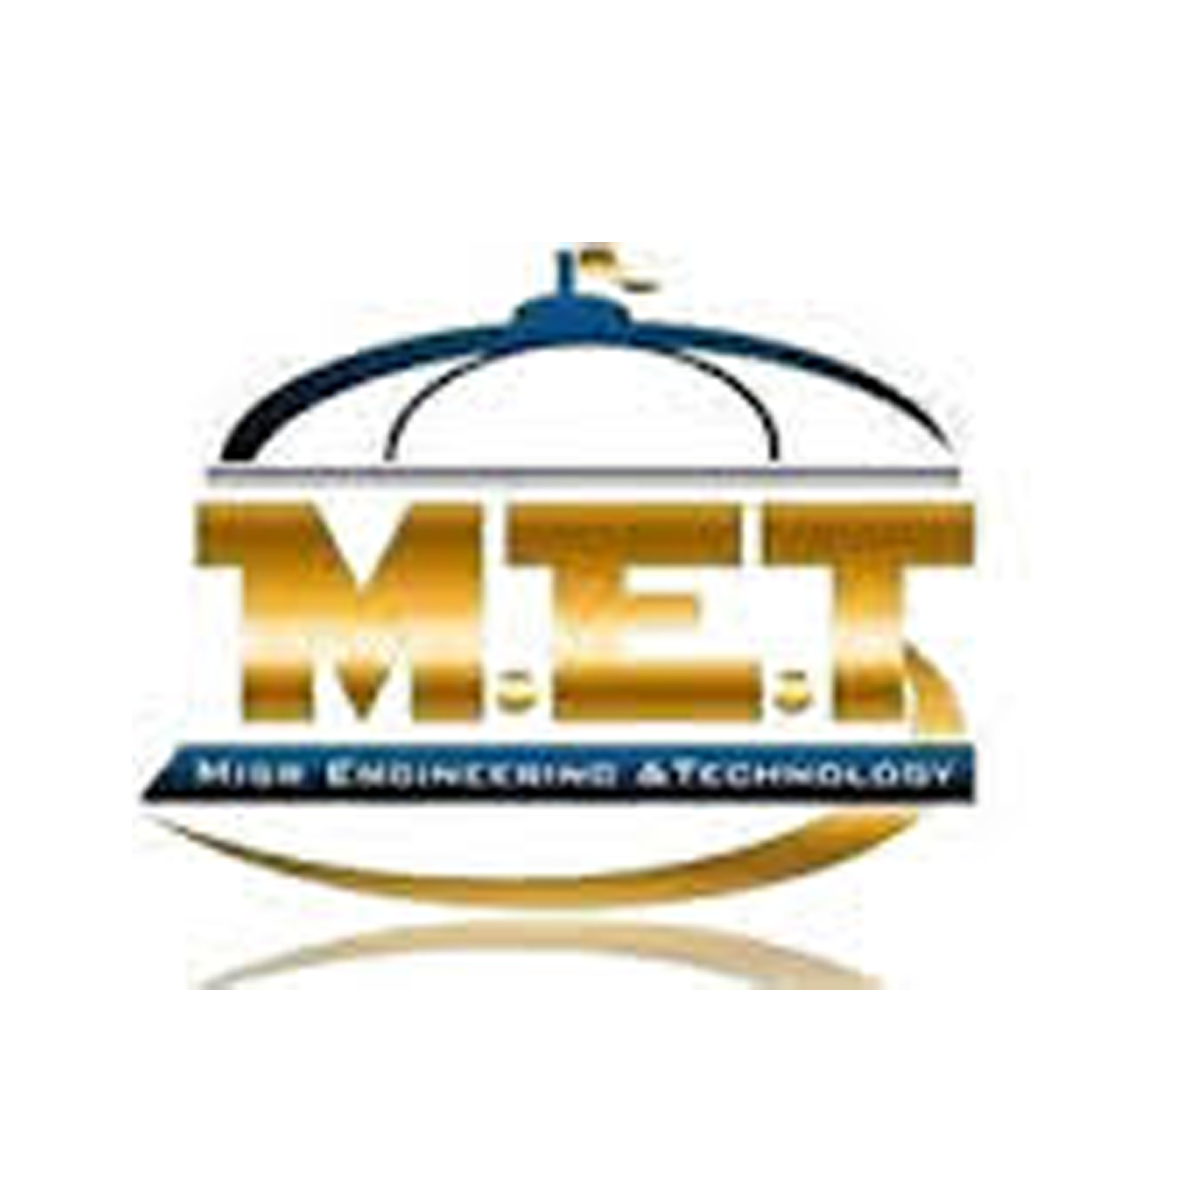 Mansoura Higher Institute of Engineering and Technology MIET